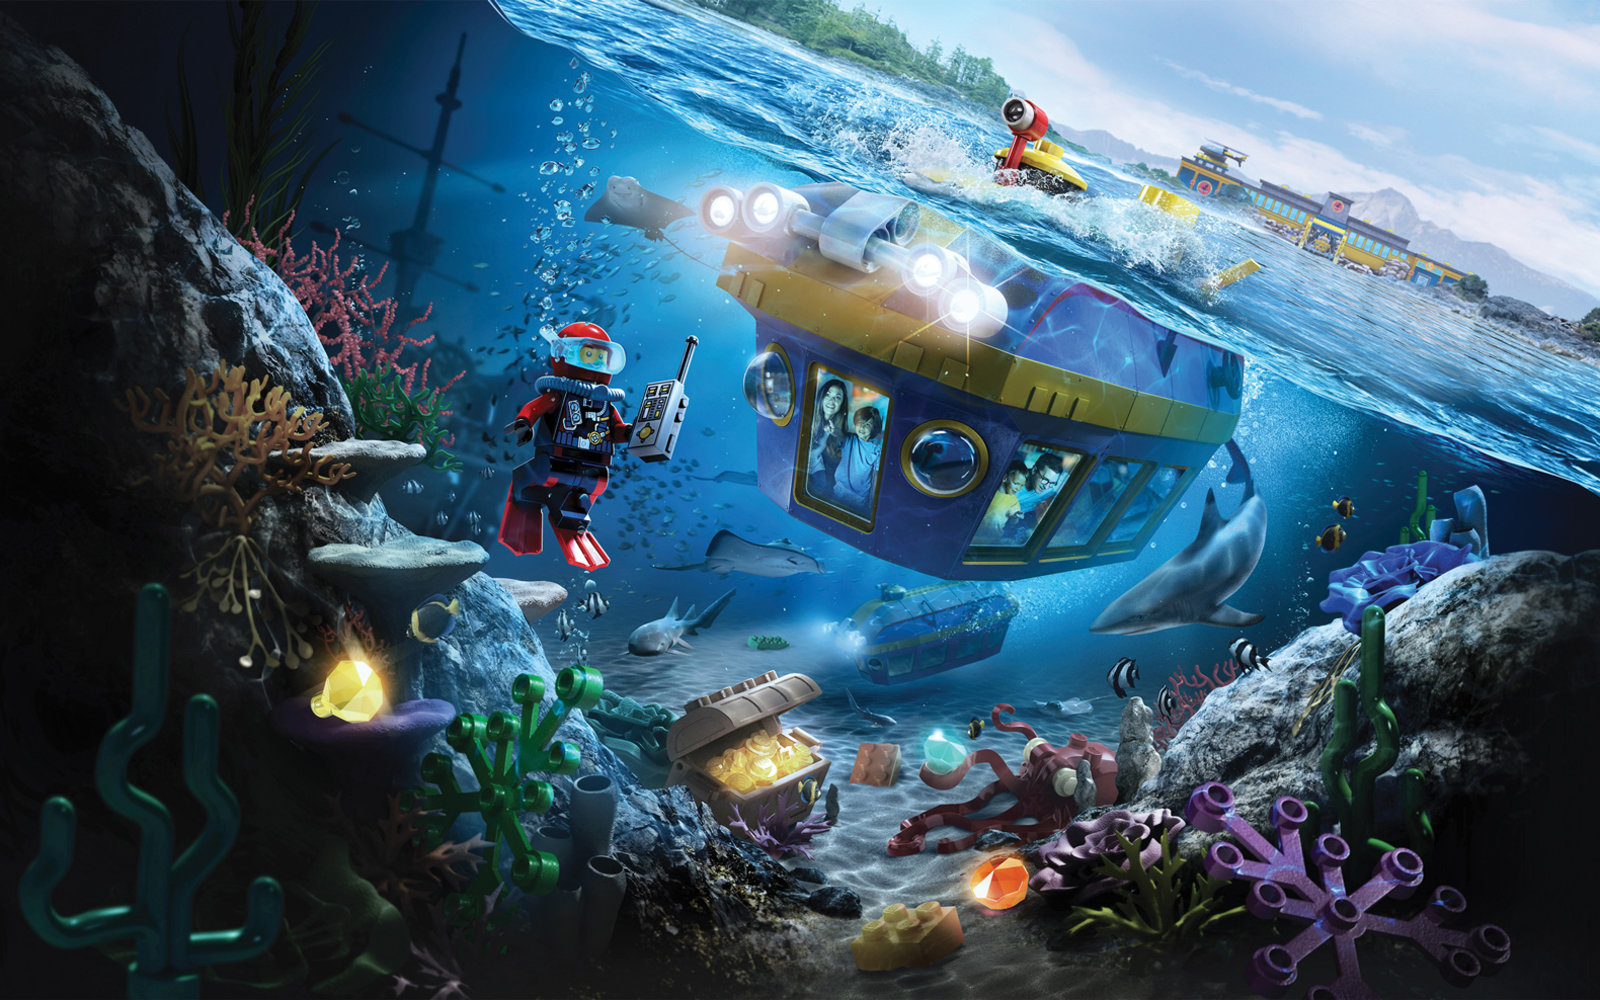 Lego City Deep Sea Adventure — Legoland California Resort